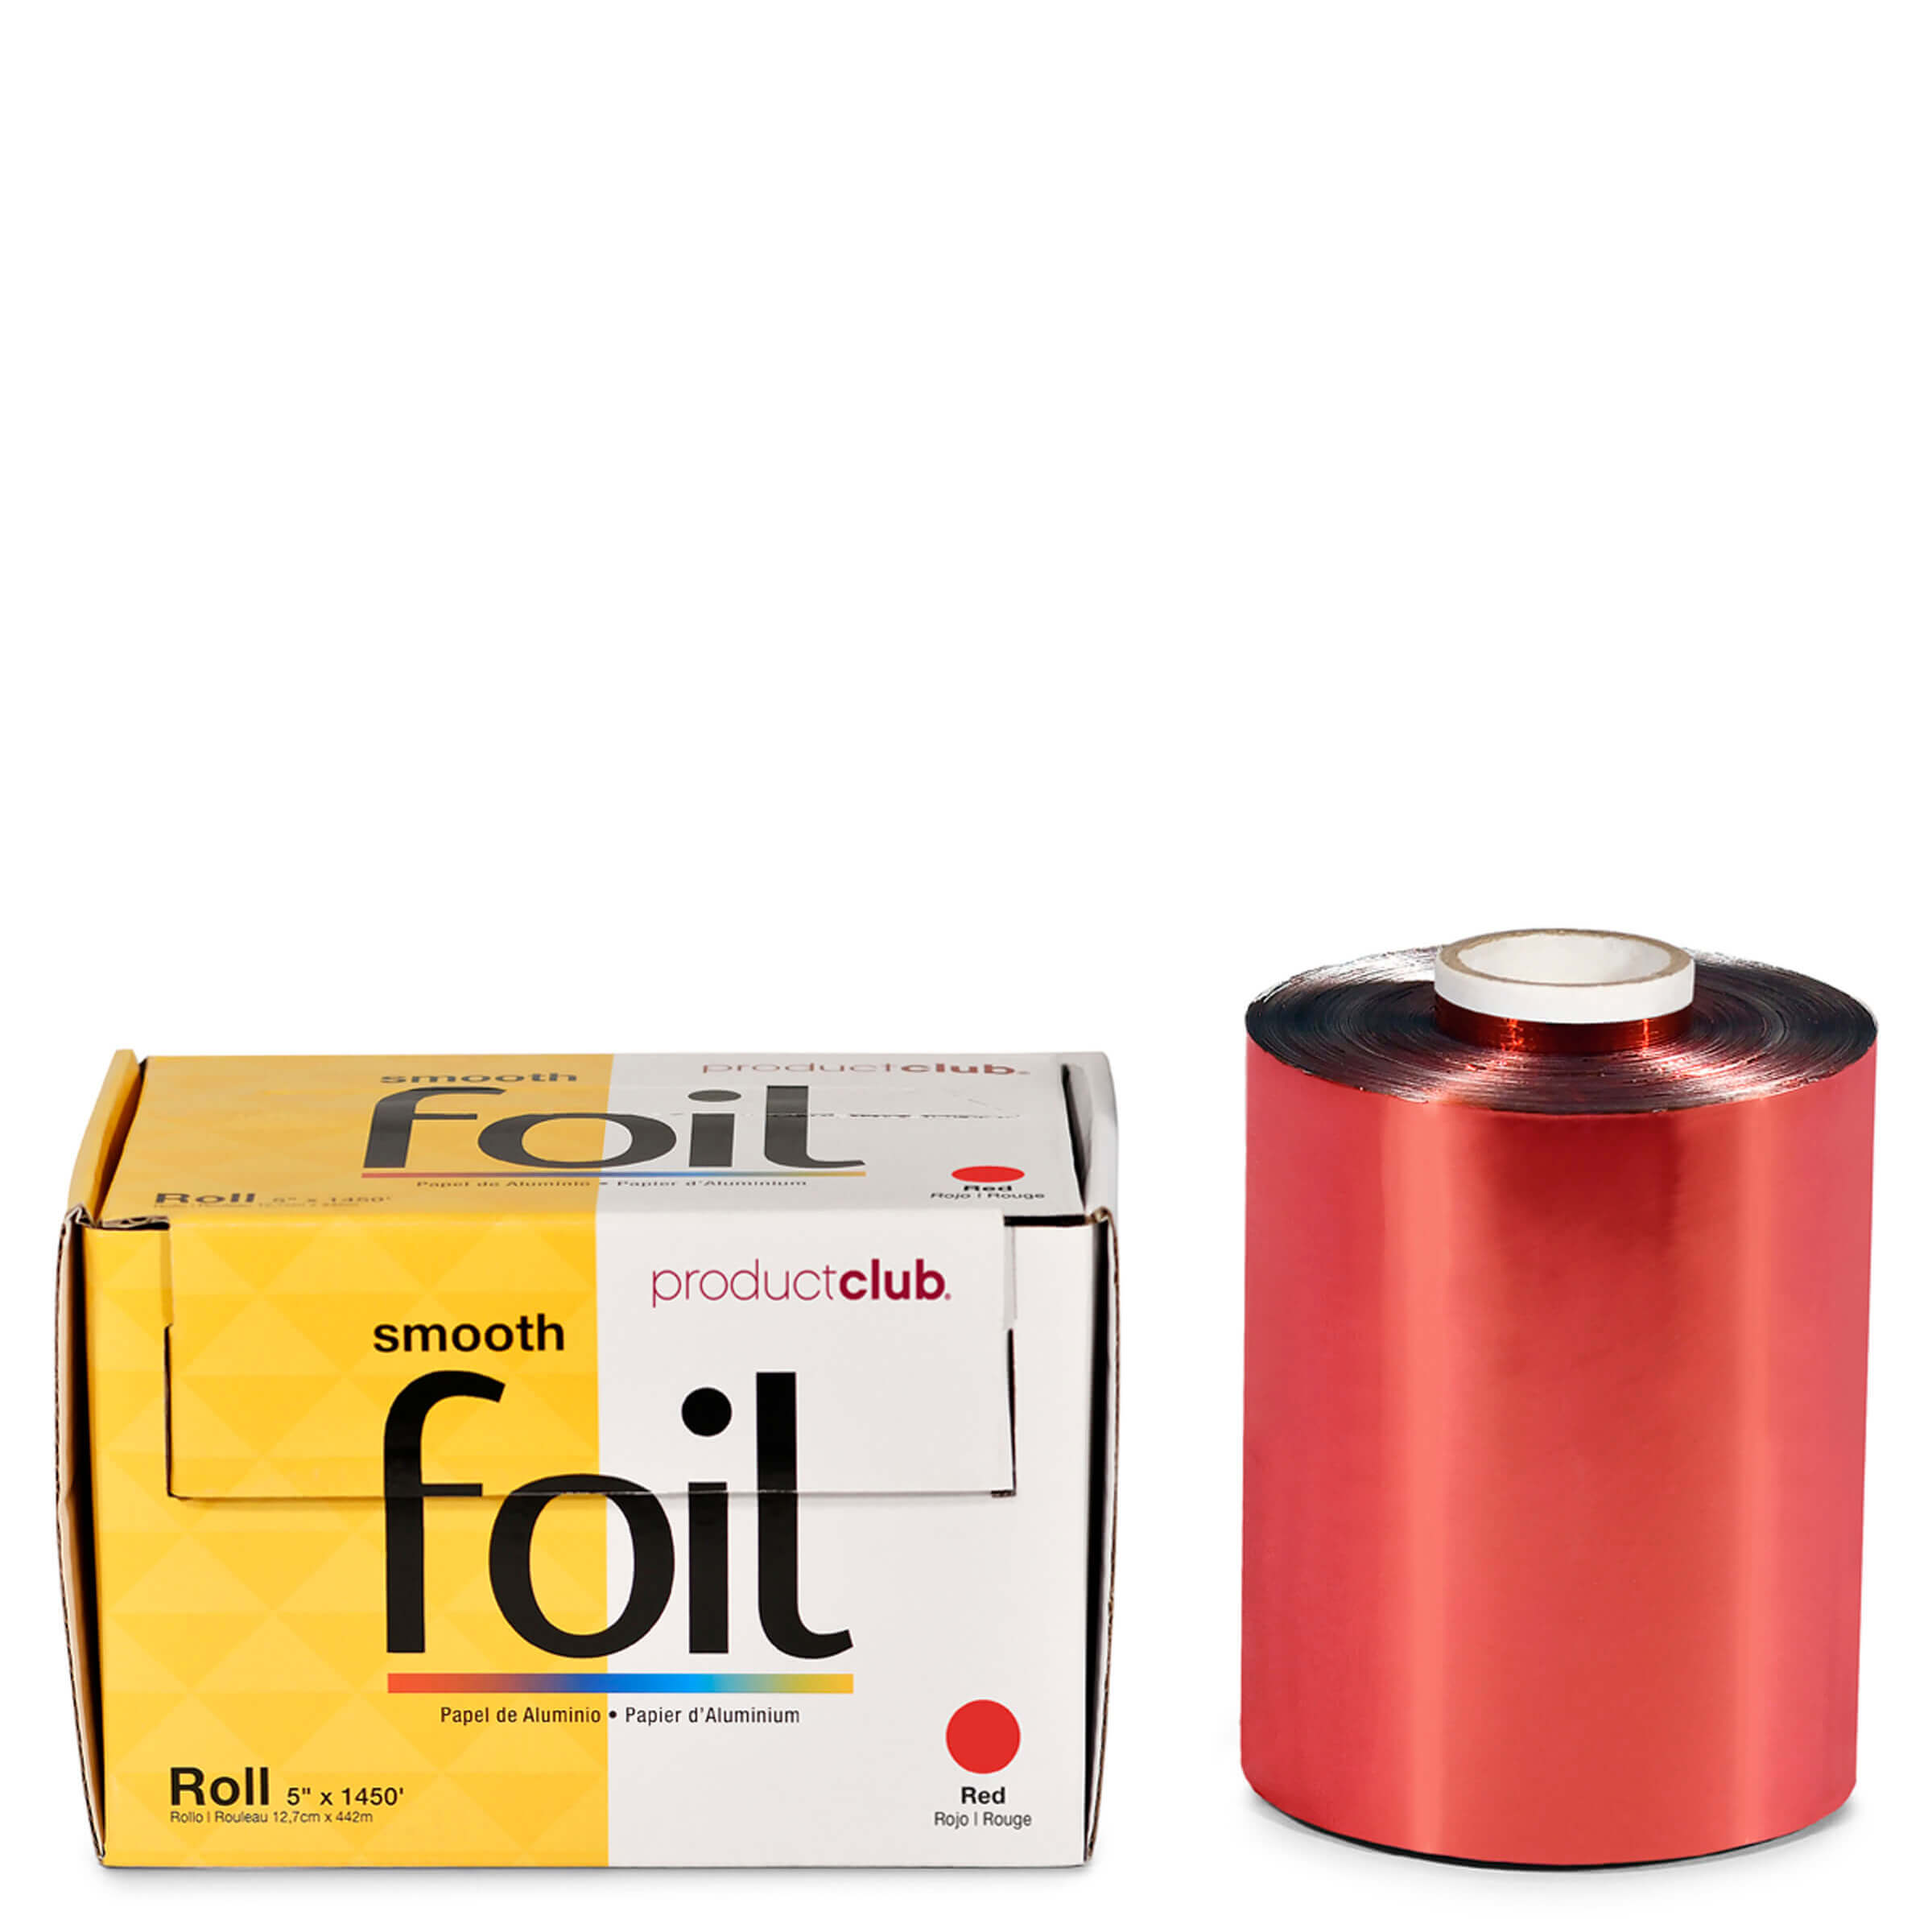 RF-50-60R Red Highlighting Roll Foil